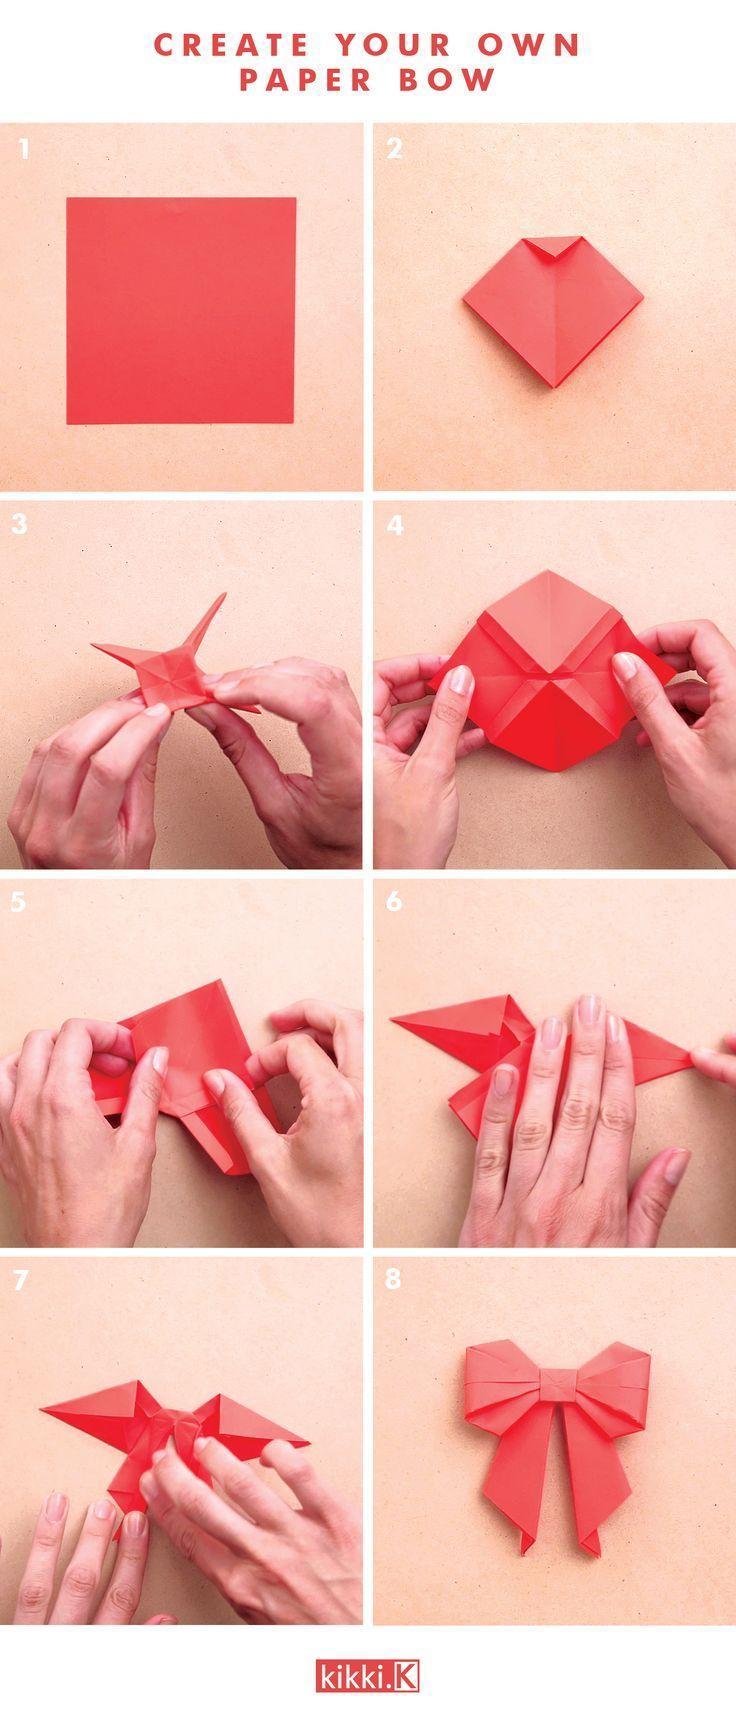 Diy simple and easy paper diy butterfly party decorations - Decorate Your Gifts With This Gorgeous Diy Origami Paper Bow Click Through To See How